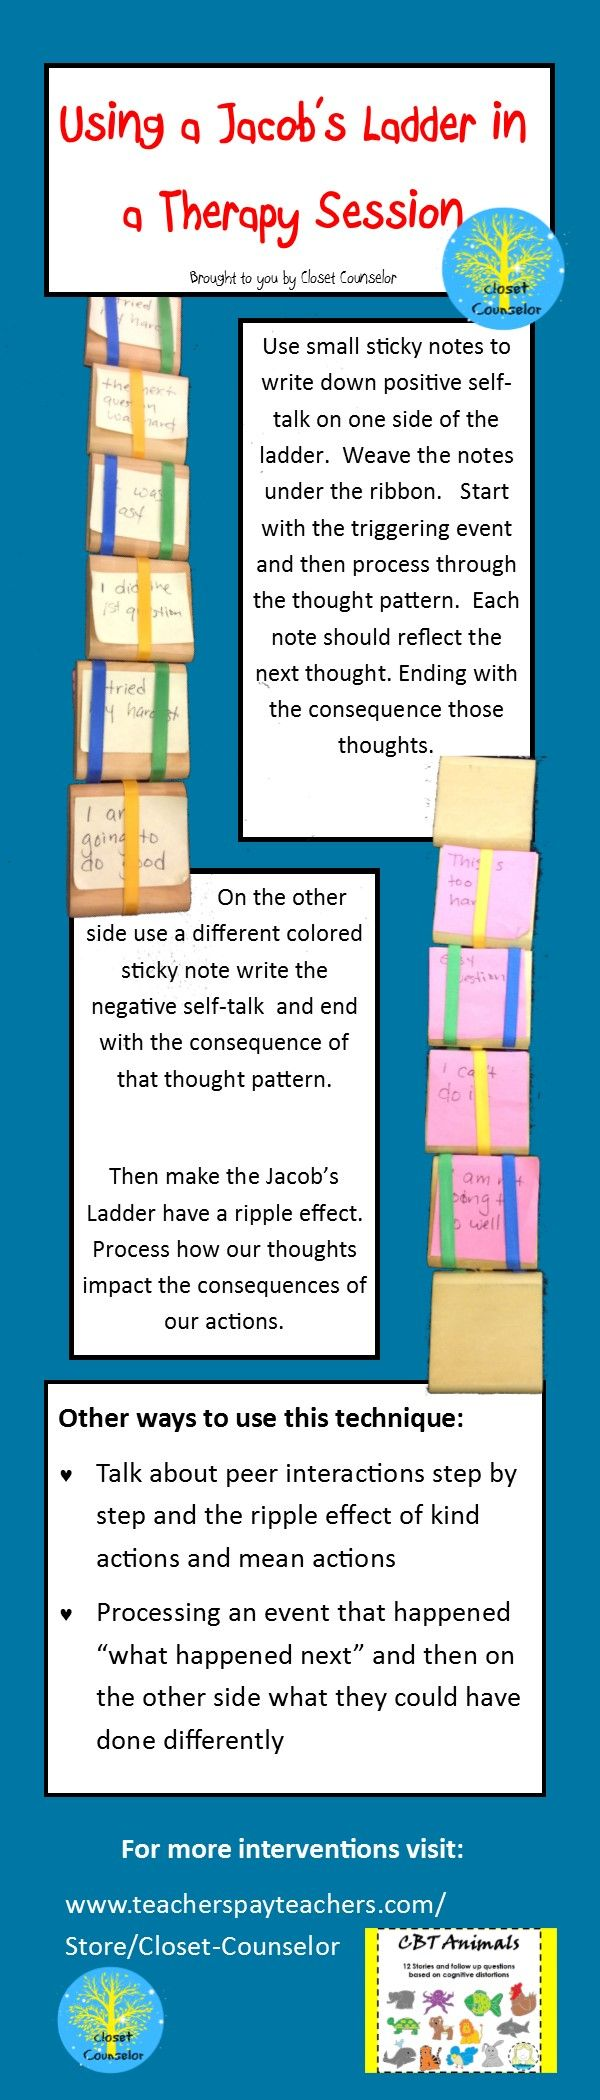 Using a Jacob's Ladder to talk about positive and negative self-talk; social skills or to process interactions with others (mean and kind behaviors).  Feel free to comment with your ideas of how to use a Jacob's Ladder in therapy session!